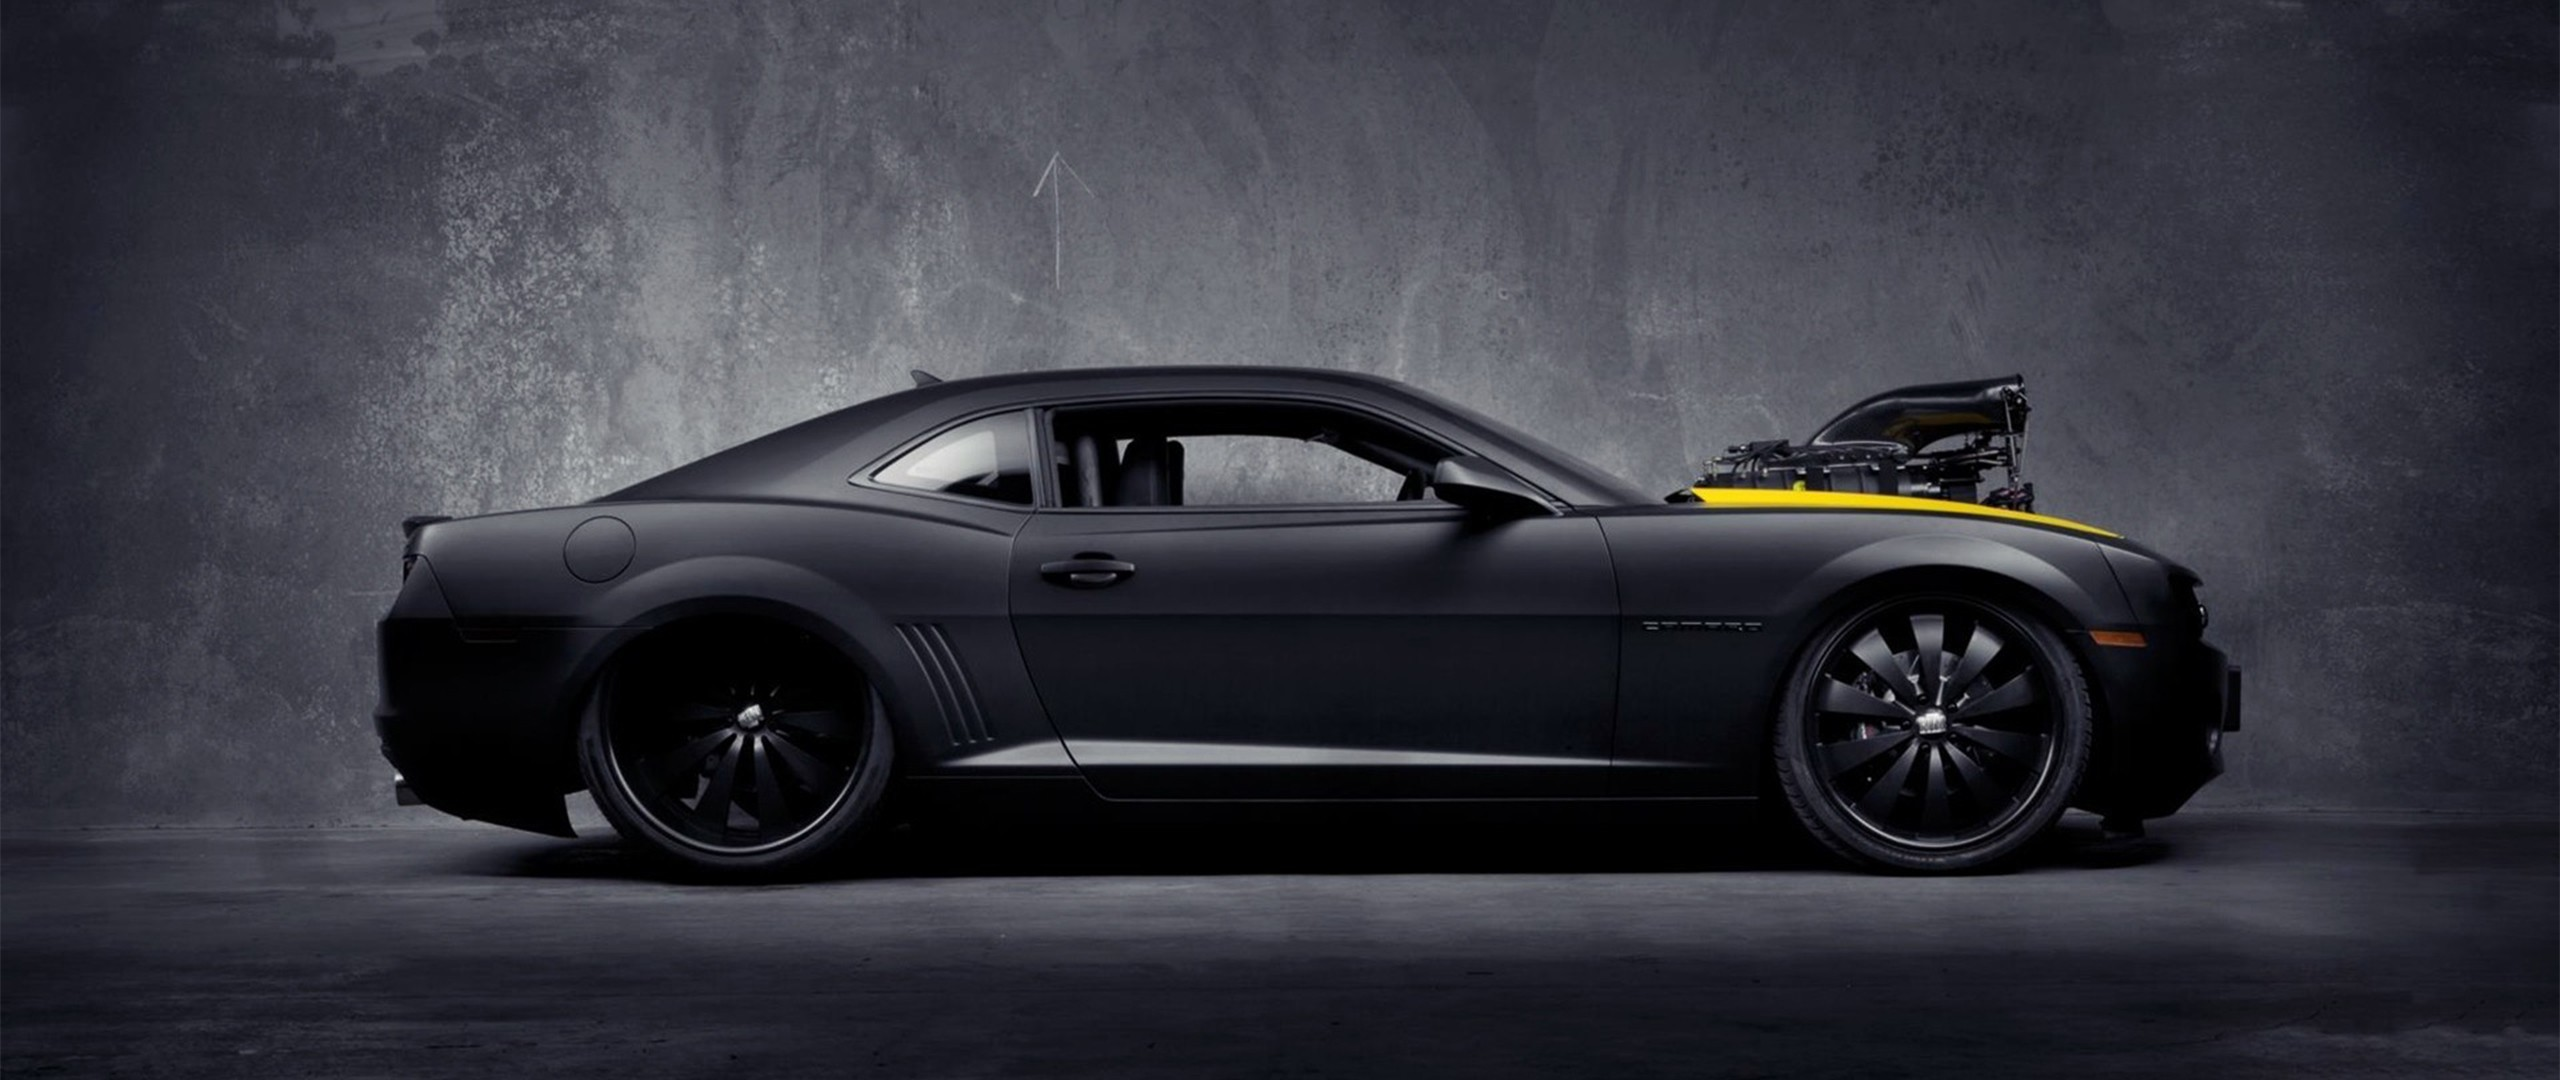 2560x1080 Bumblebee-Wallpaper – 434163-ultra-wide-car-Chevrolet_Camaro_Bumblebee